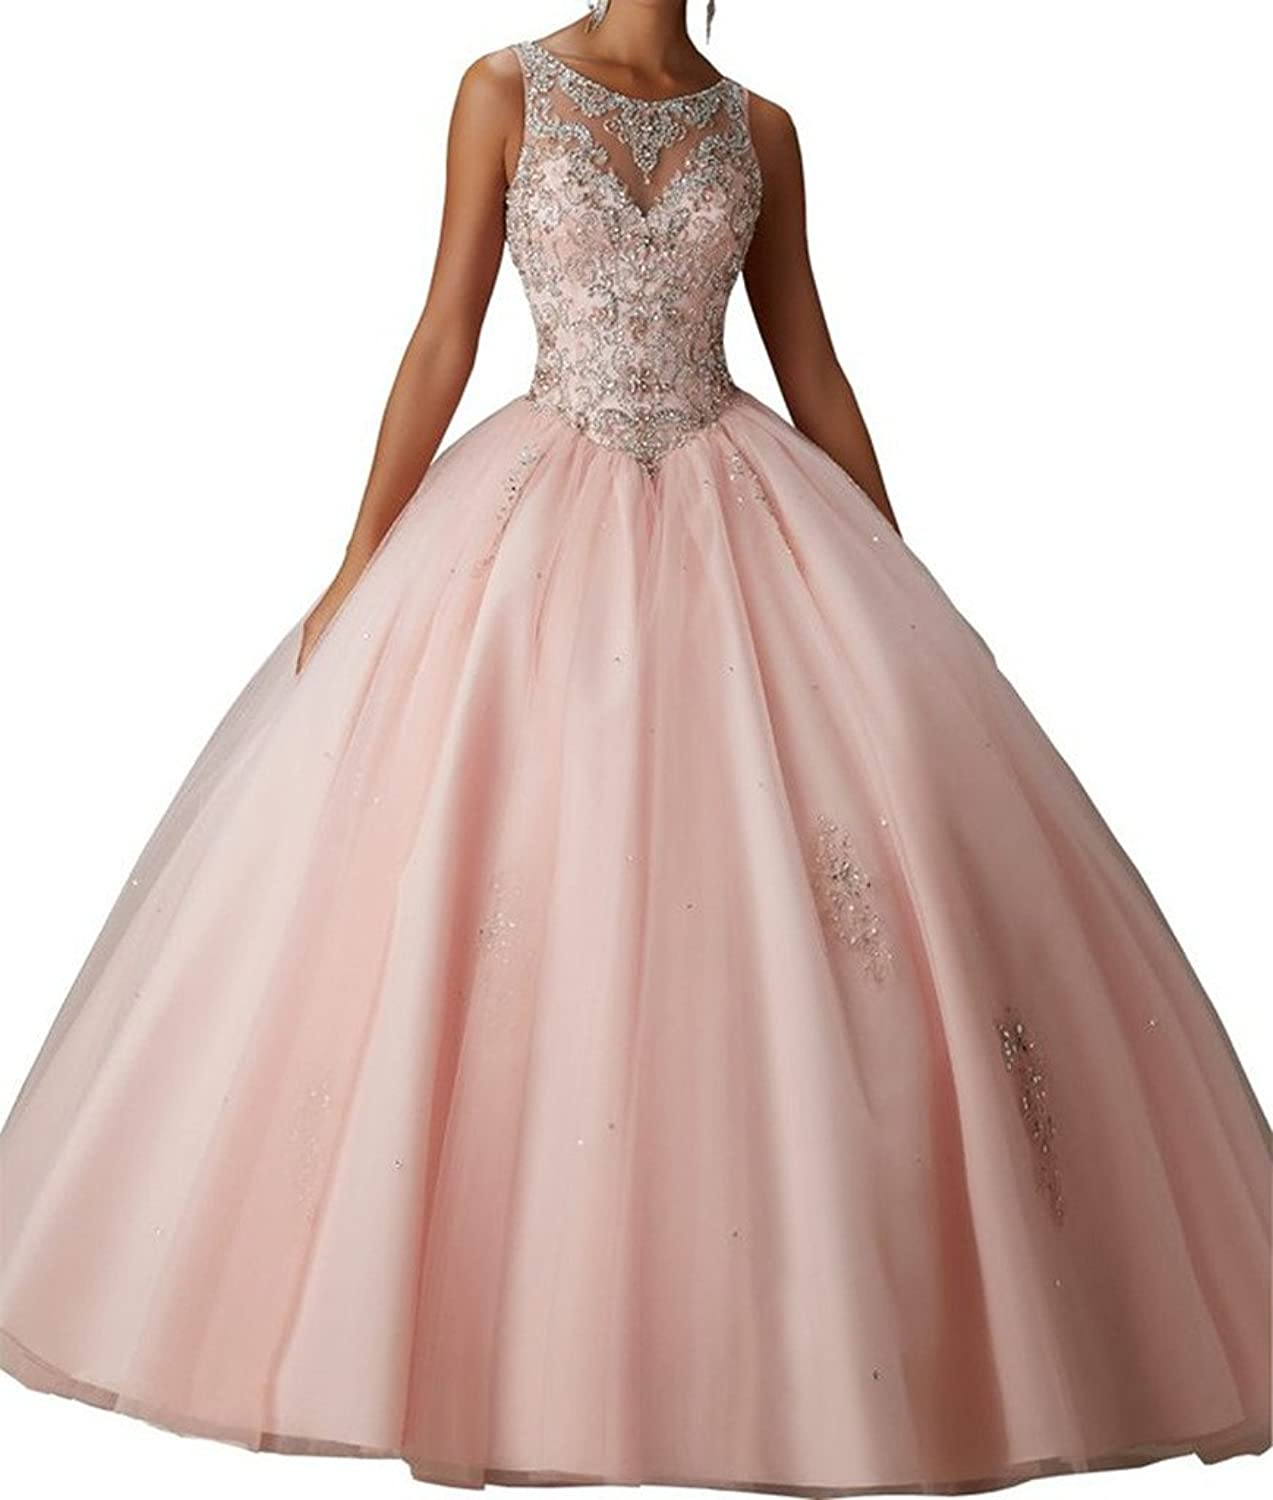 Beautyprom Women's Ball Gown Jewel Neck Tulle Quinceanera Dress Prom Dress